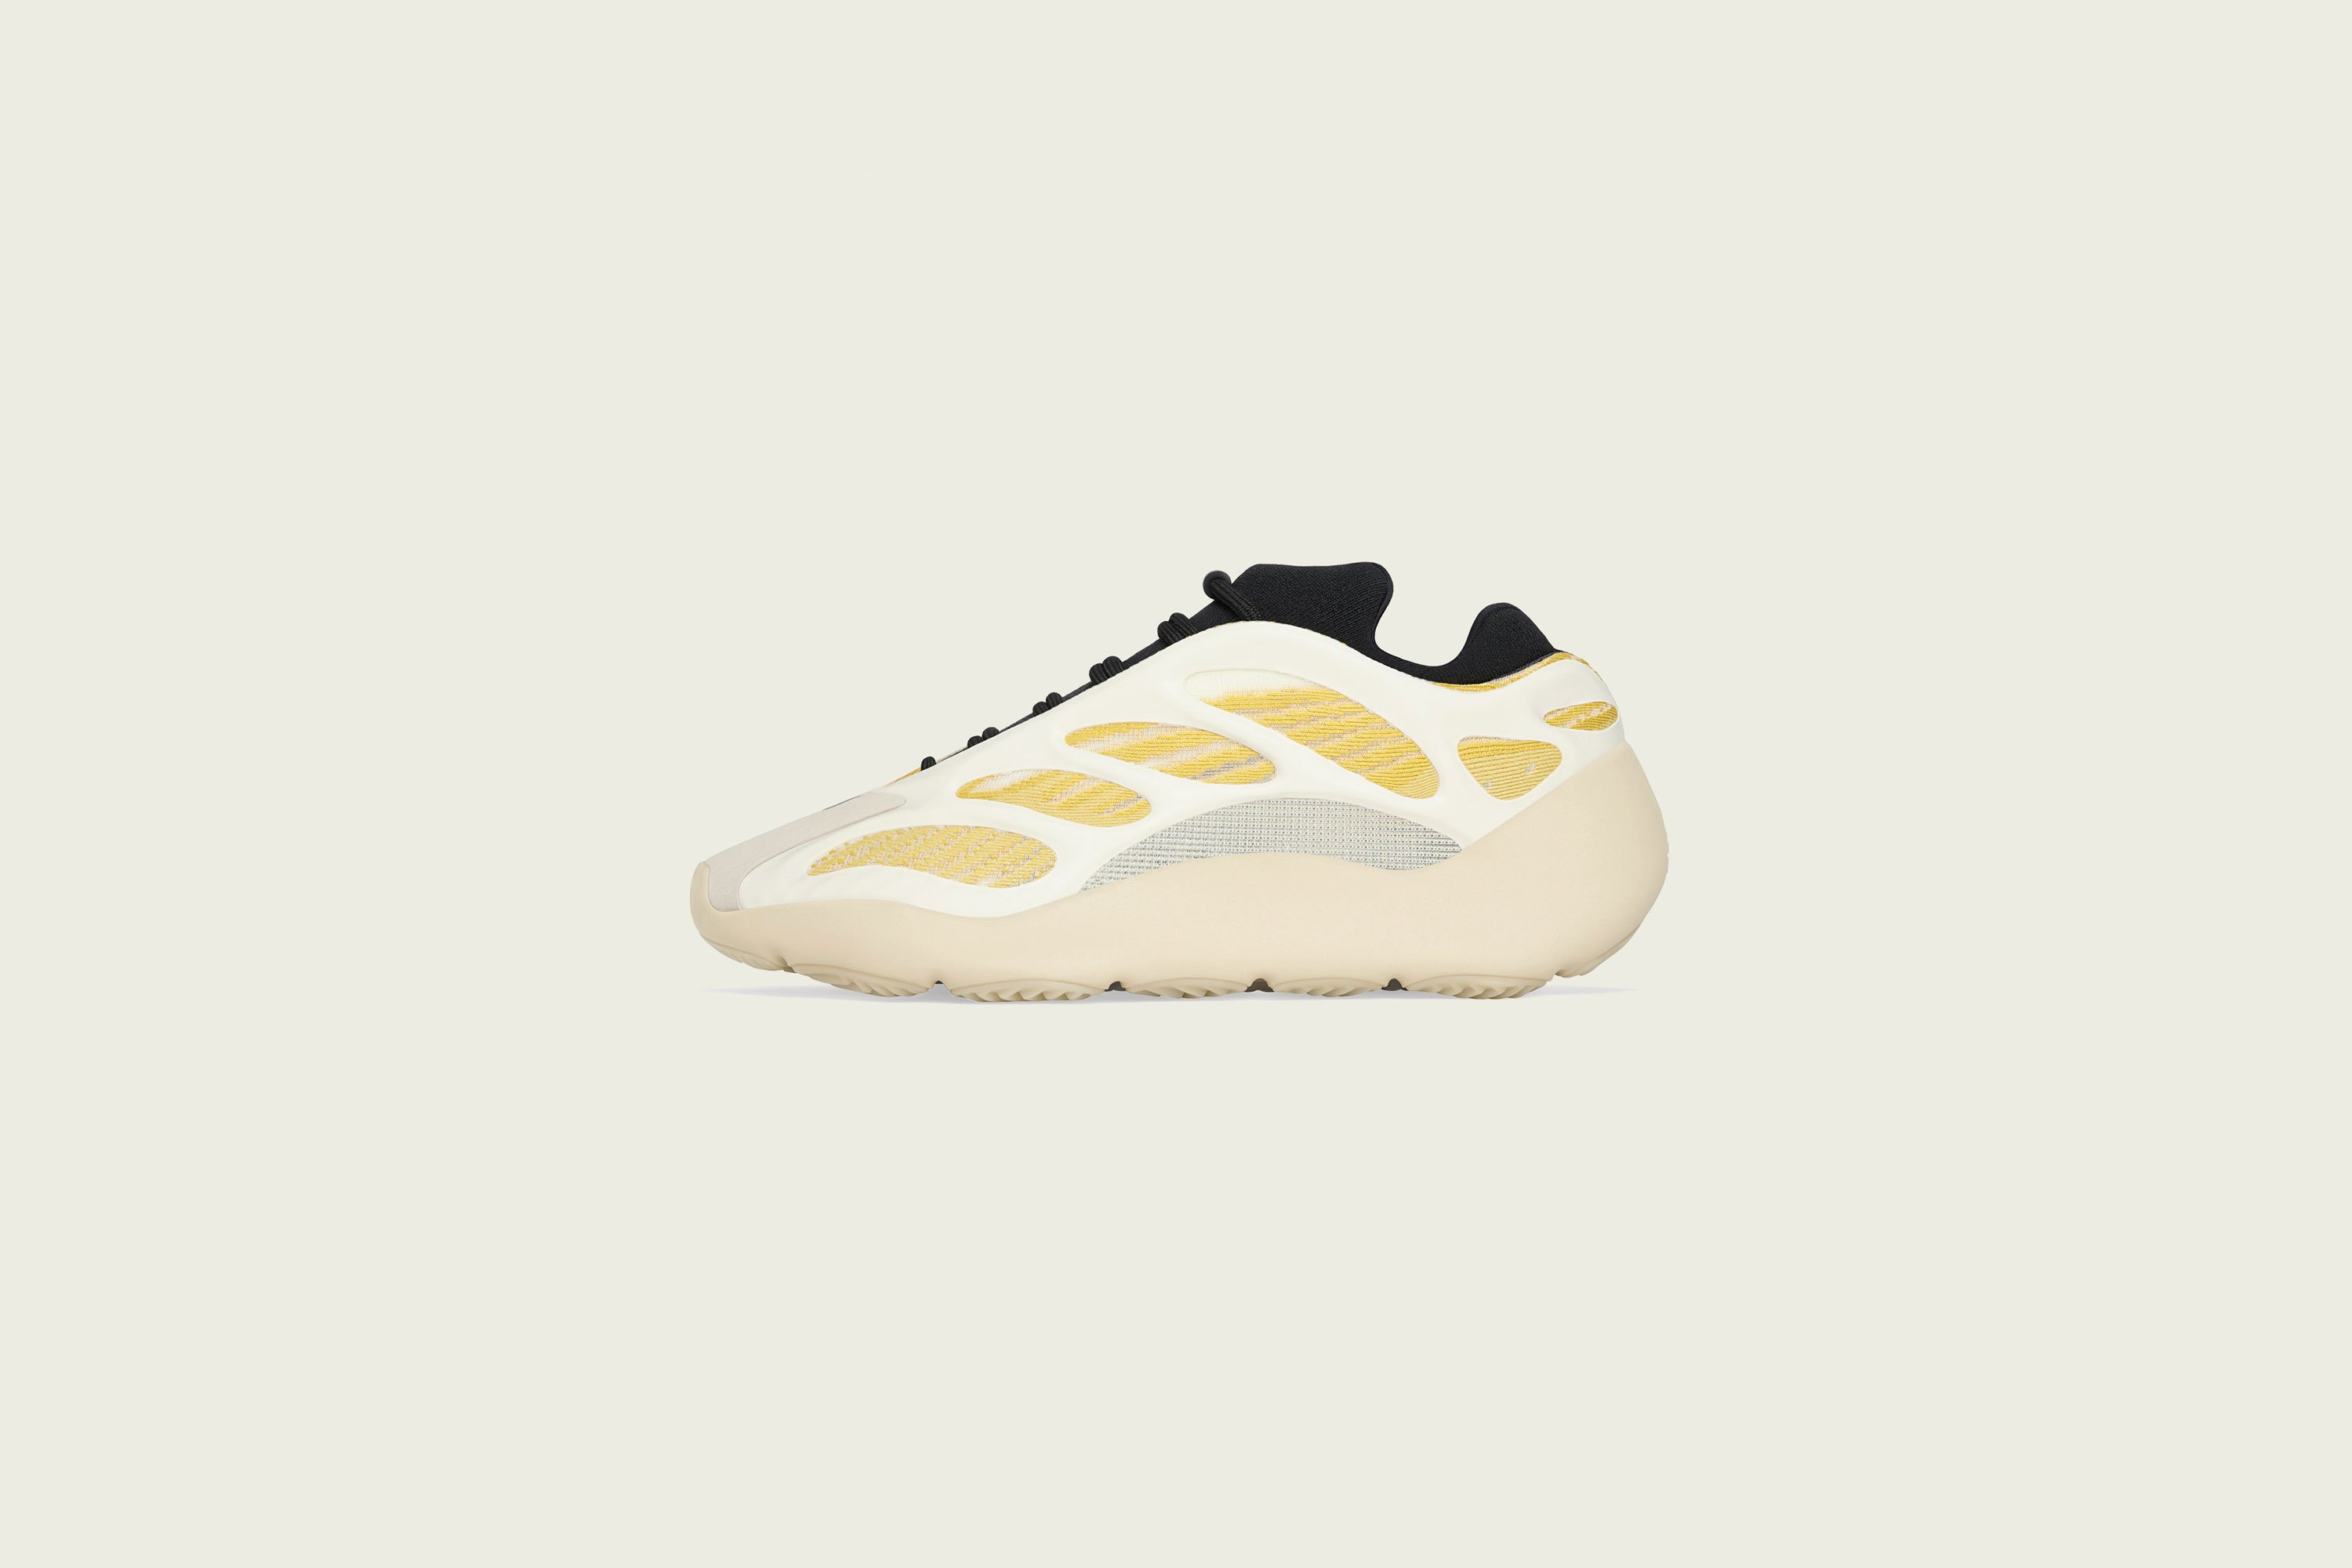 Yeezy 700v3 - Safflower– Up There